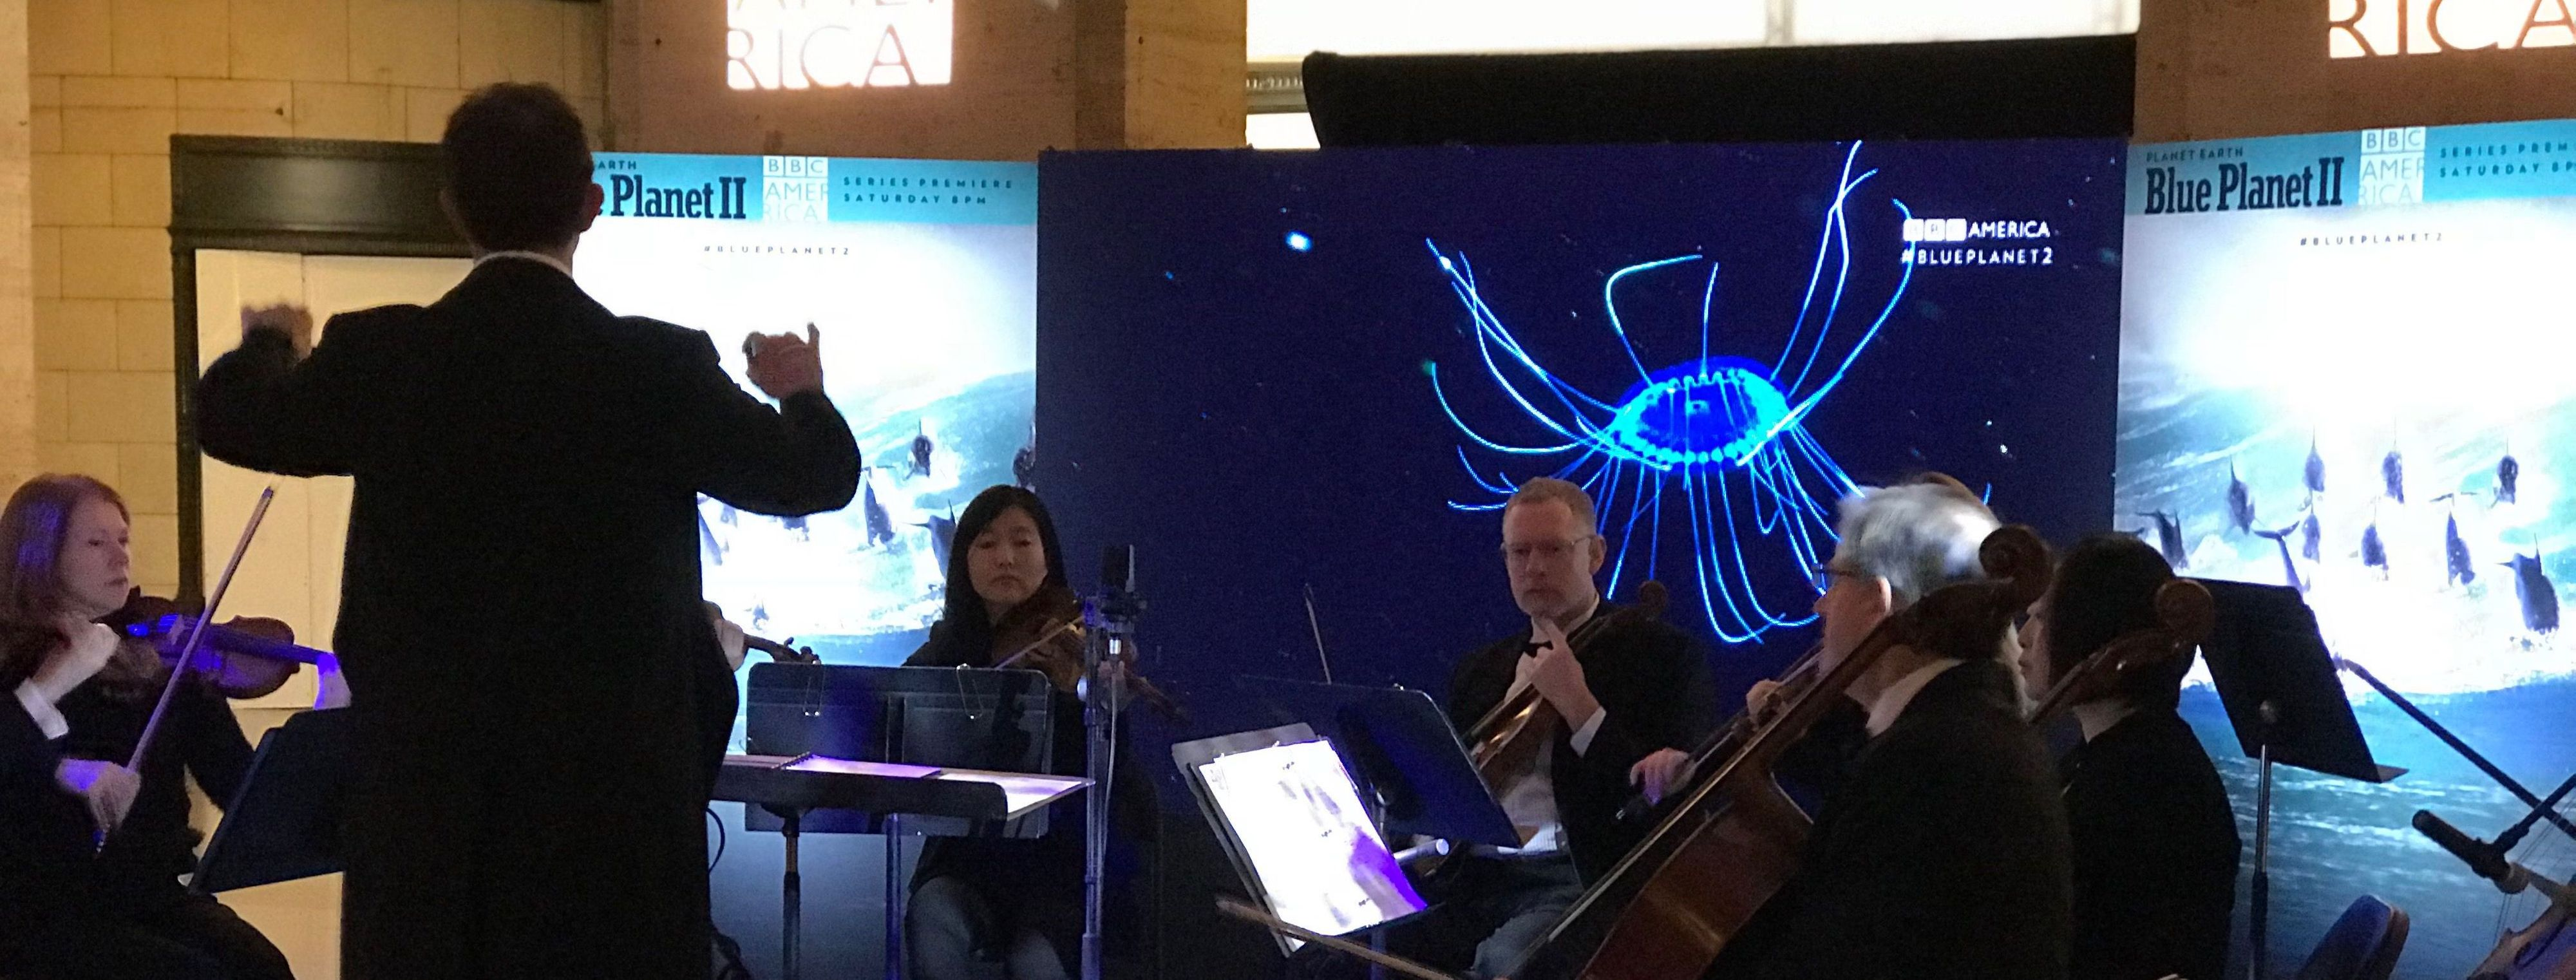 Blue Planet II BBC Orchestra Pop Up in Chicago Union Station